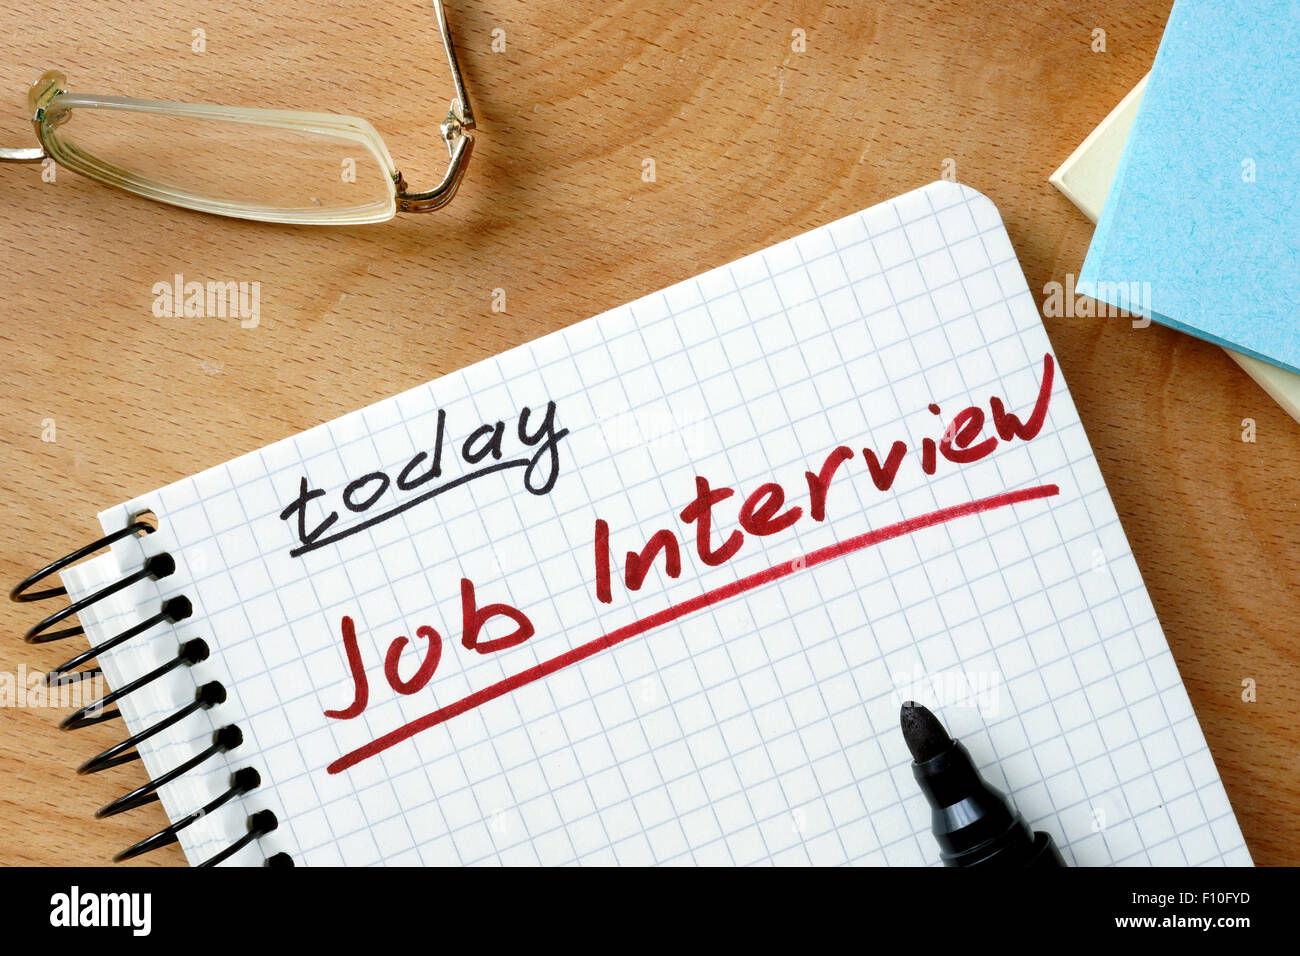 Notepad with job interview today. - Stock Image